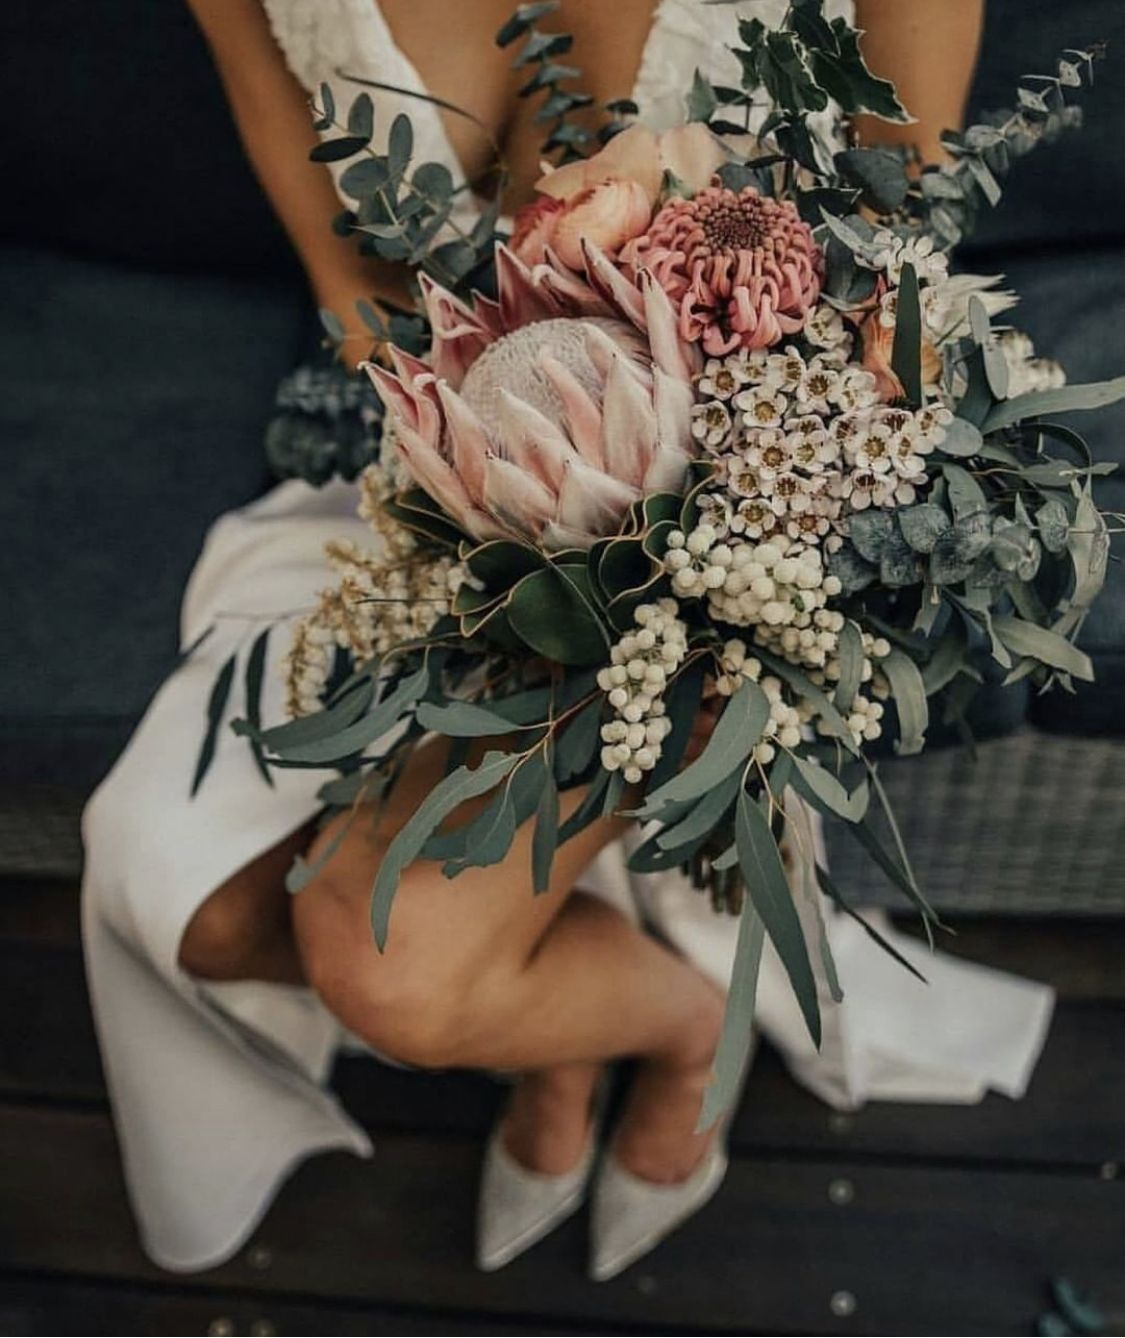 Incredible Melbourne Wedding Floral Arrangements See This Pinterest Board For More Examples Of Modern P Flower Bouquet Wedding Bridal Flowers Flowers Bouquet